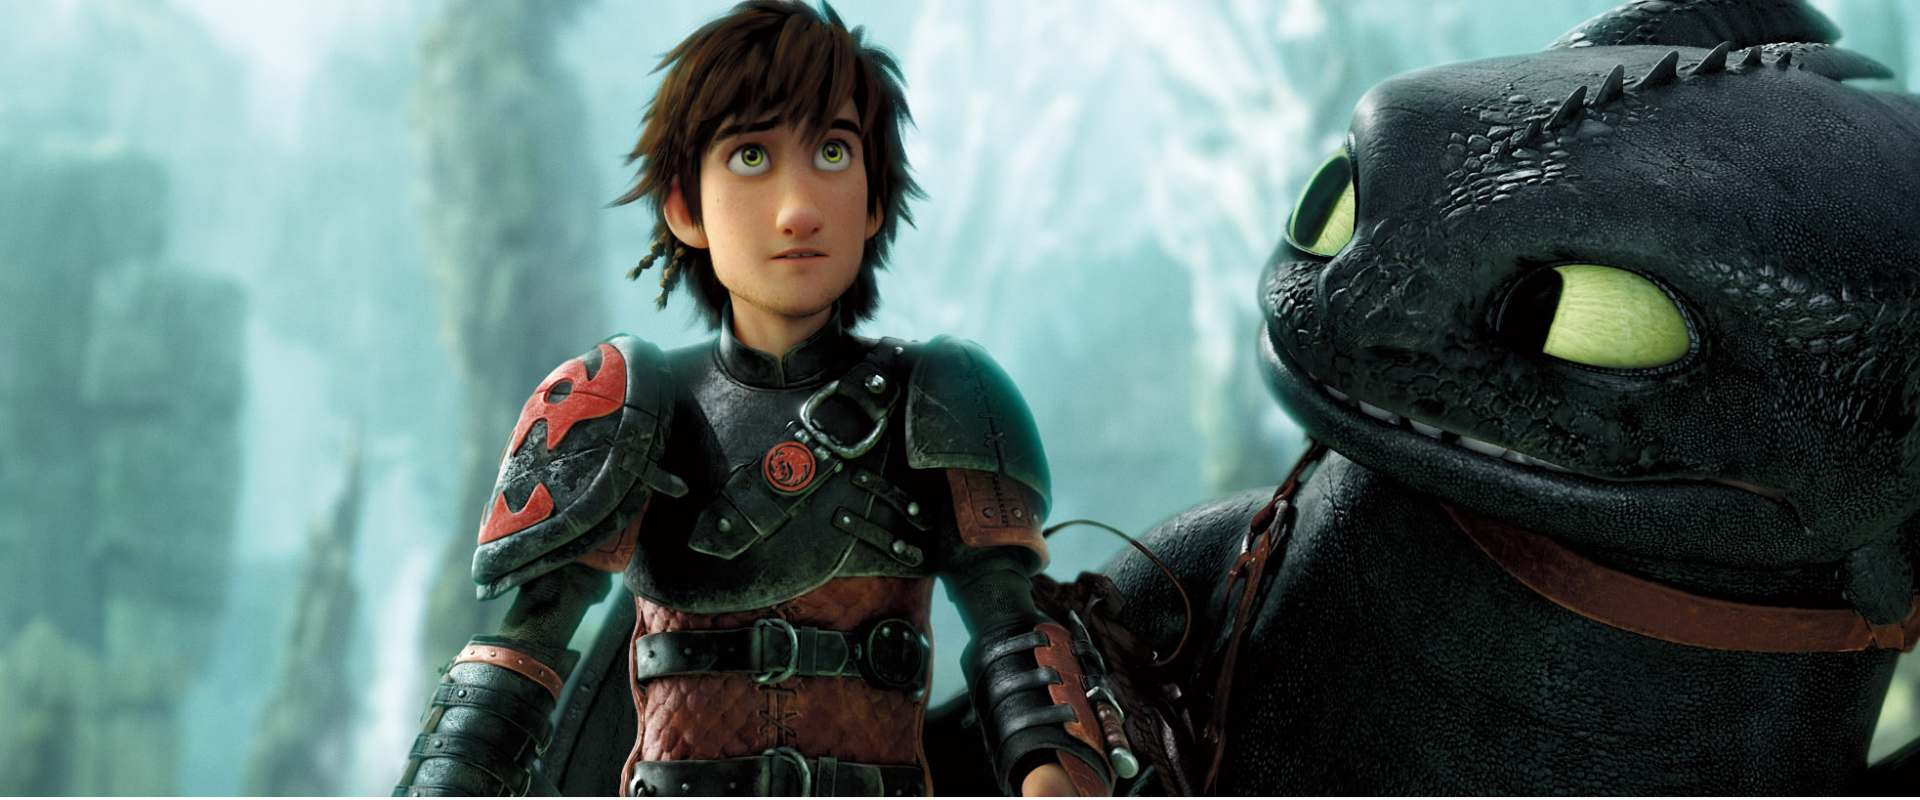 How to Train Your Dragon 2 background 1